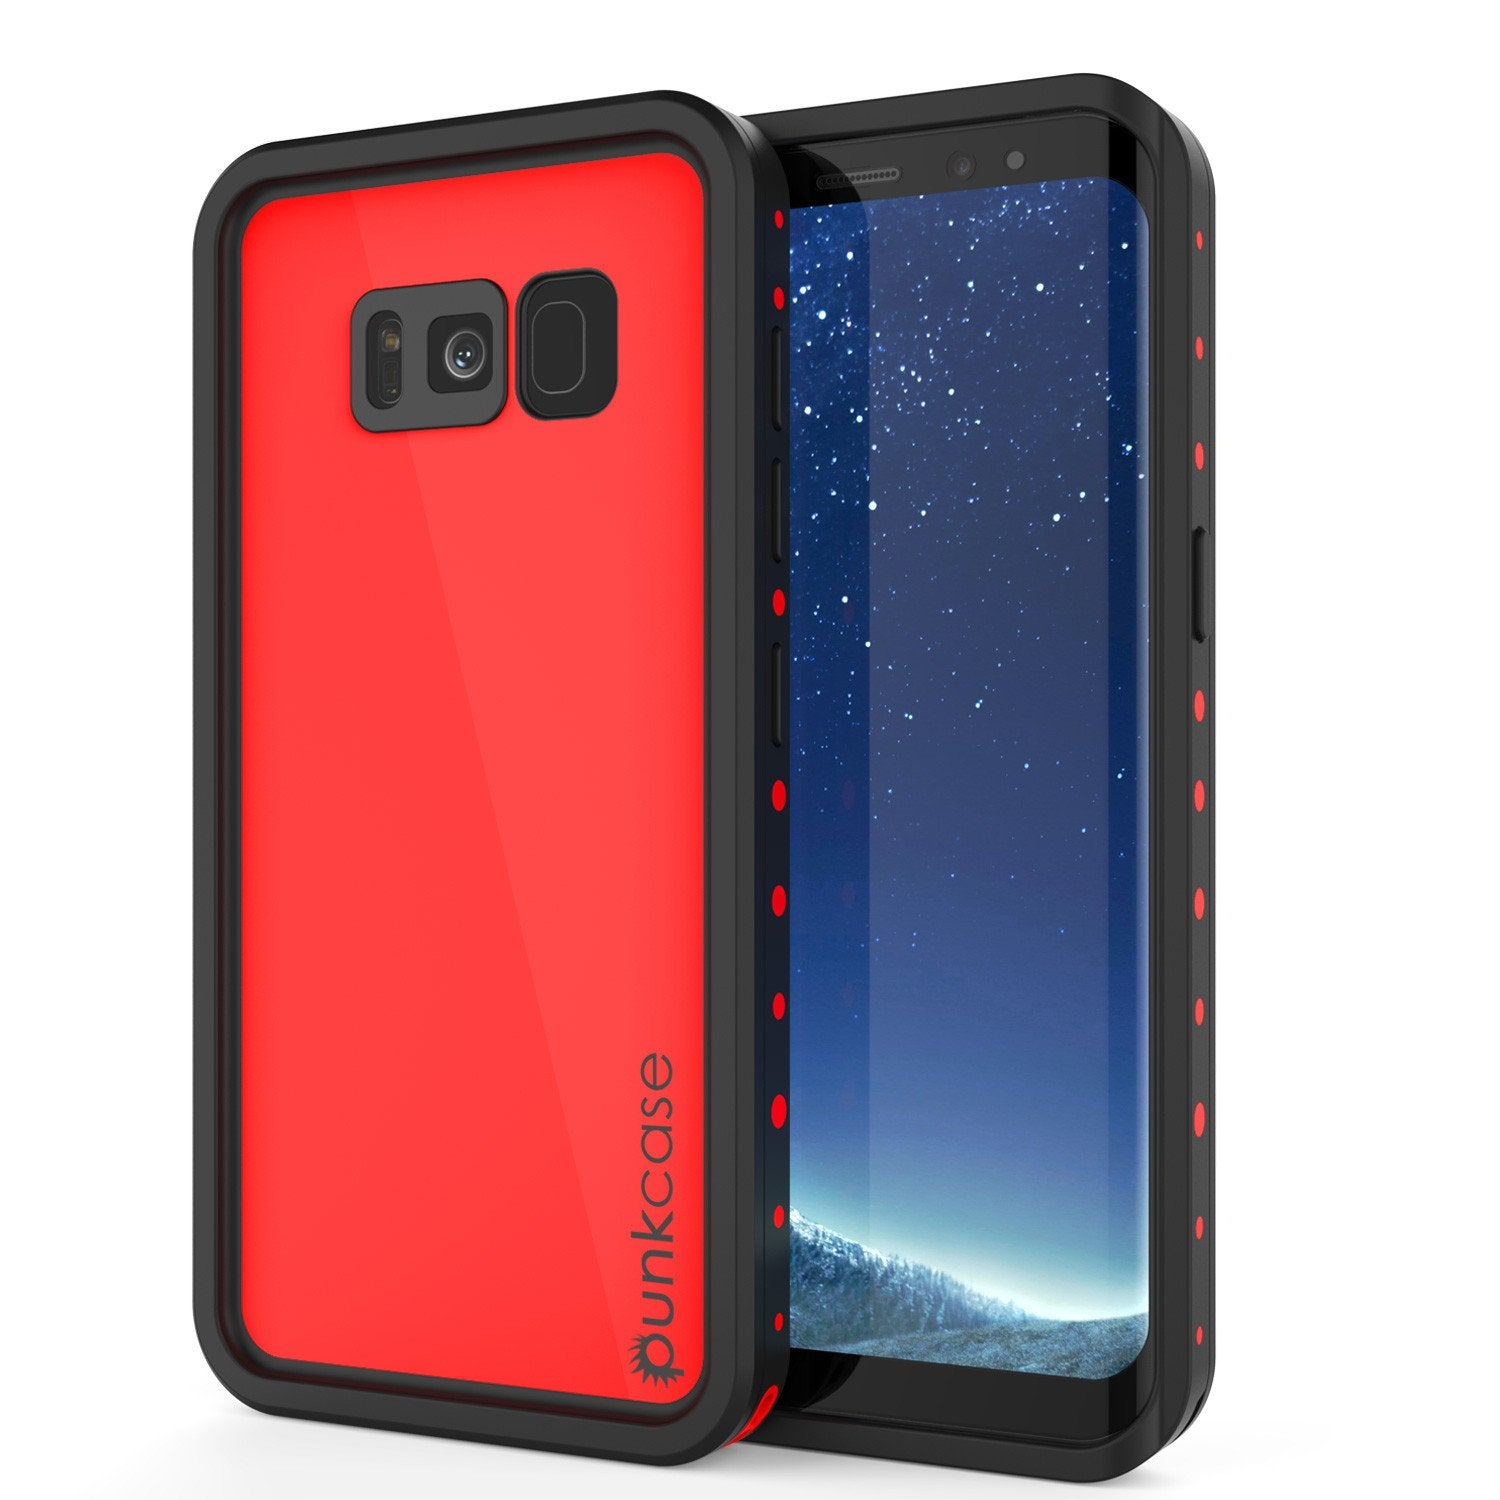 Galaxy S8 waterproof Case, Punkcase [StudStar Series] Slim Fit, RED